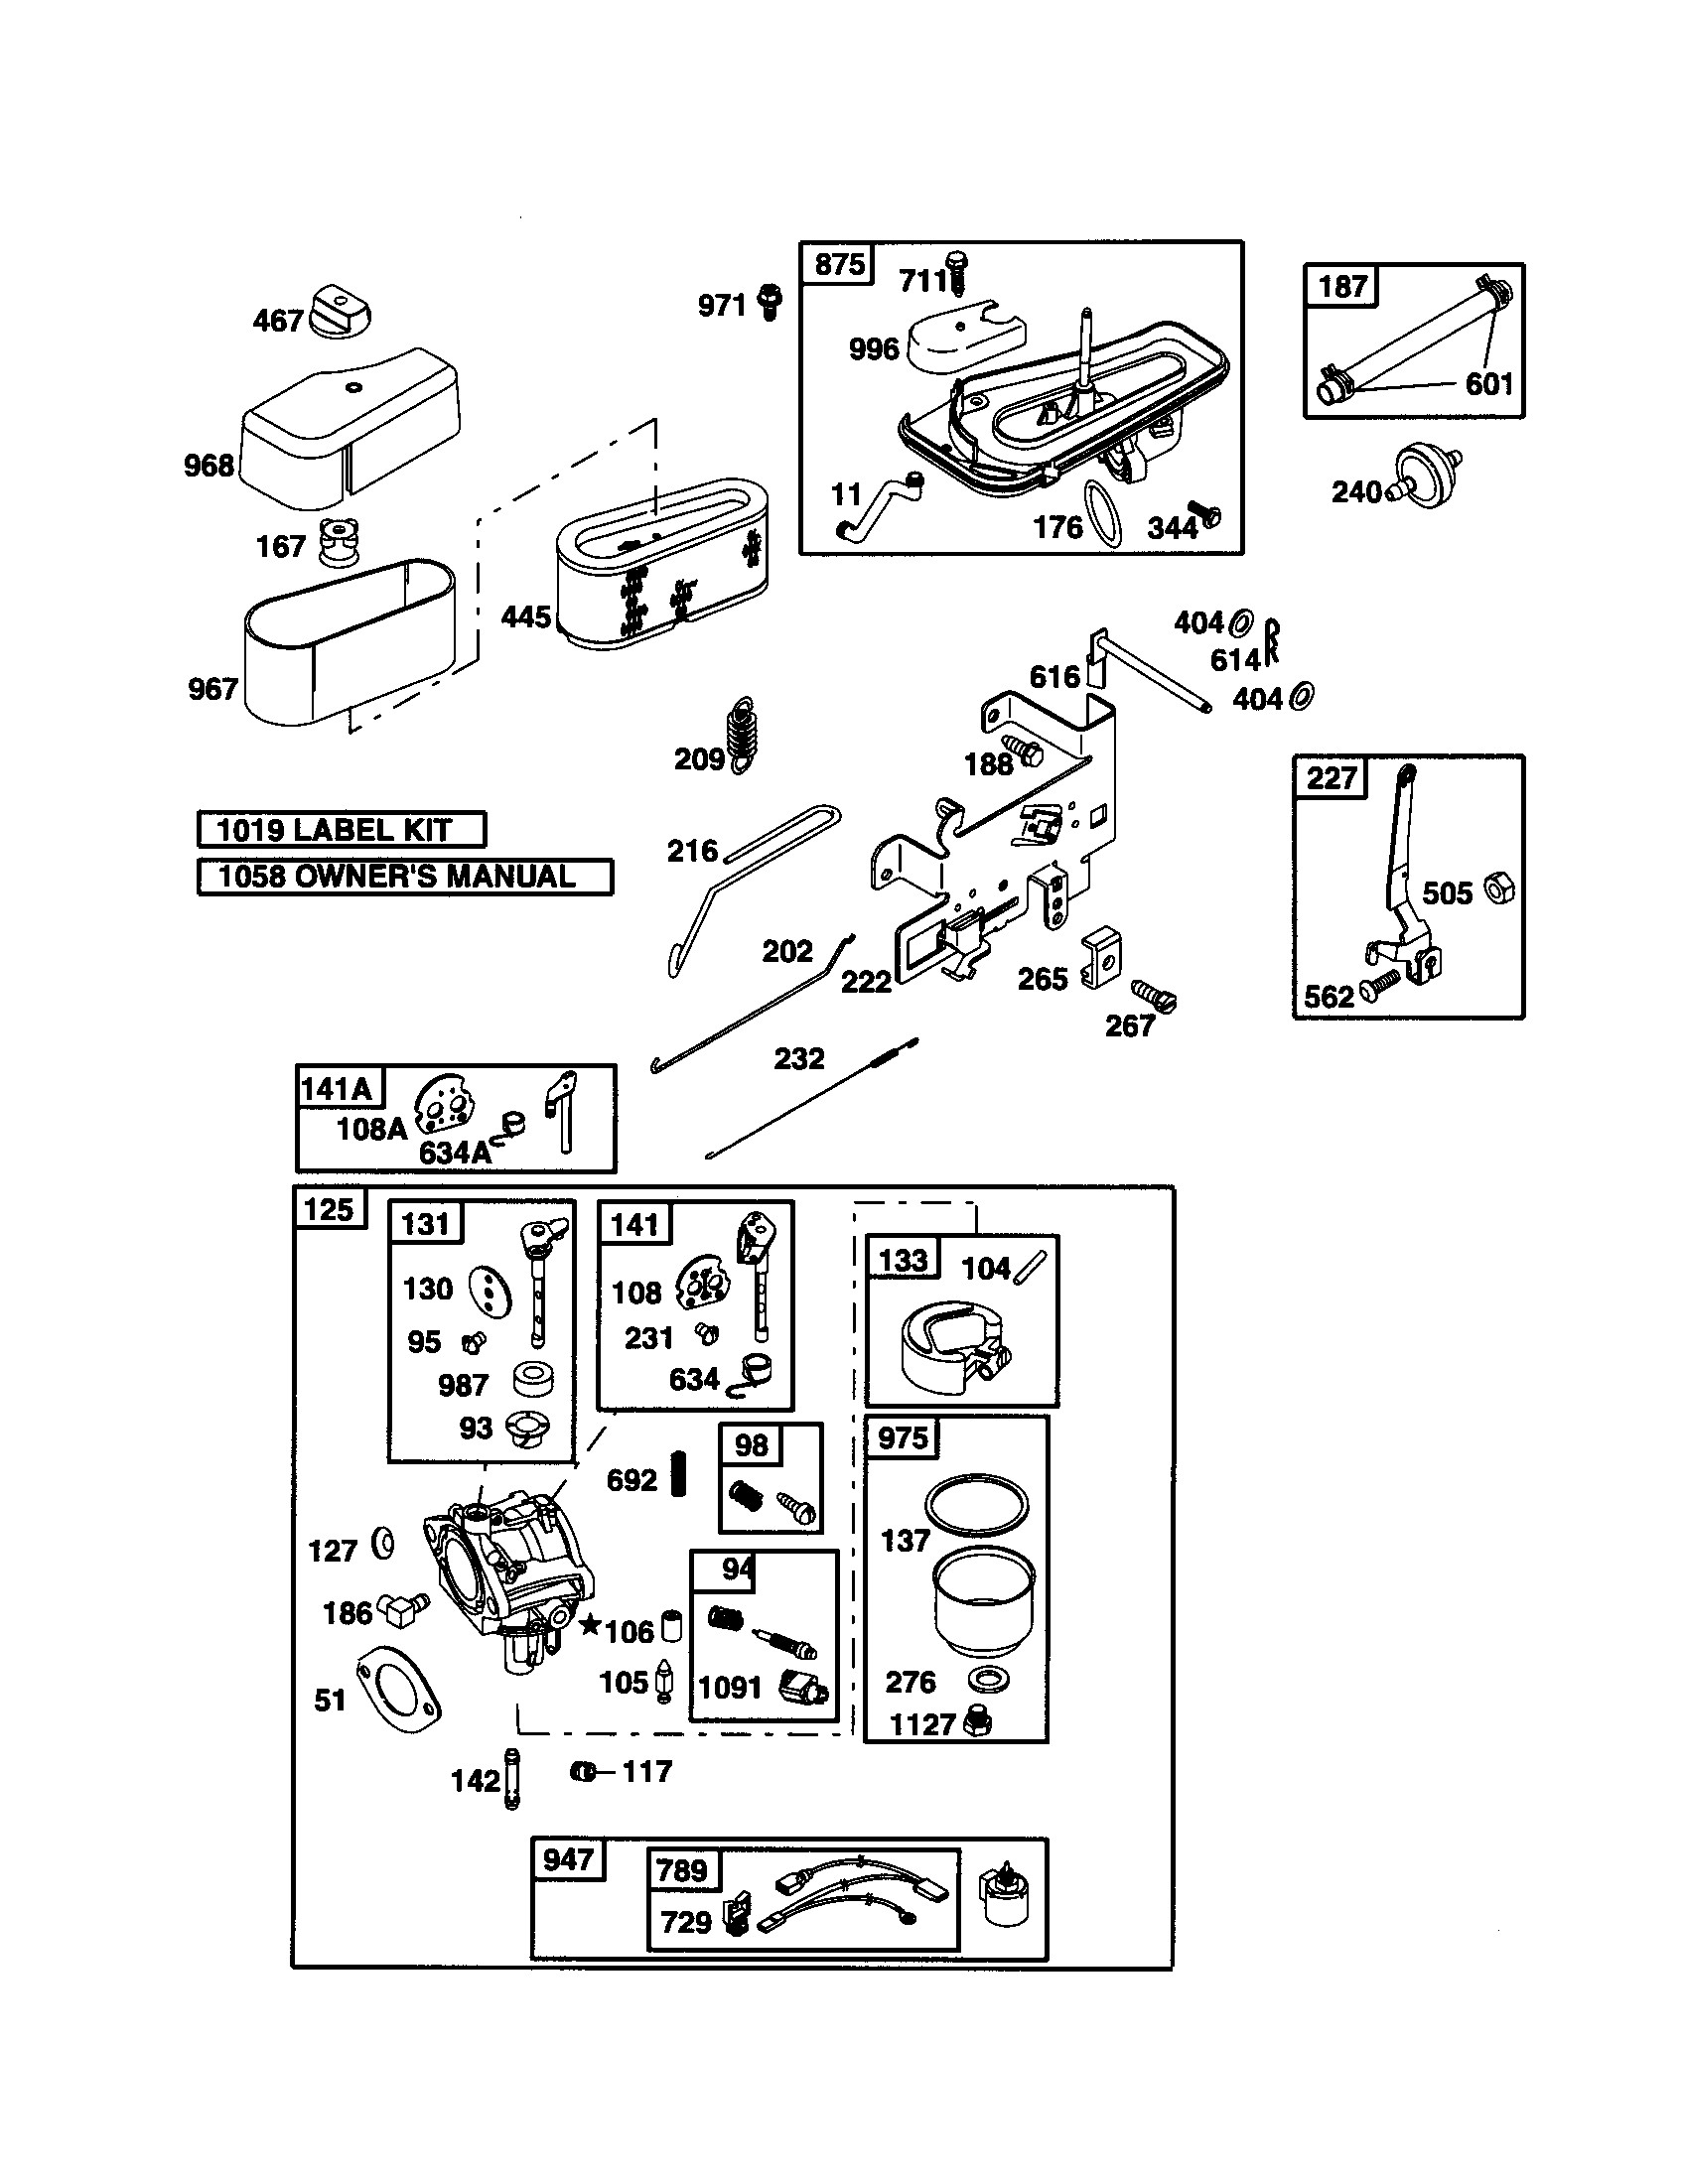 Briggs And Stratton Ignition Coil Wiring Diagram   Wiring Diagram - Briggs And Stratton Coil Wiring Diagram